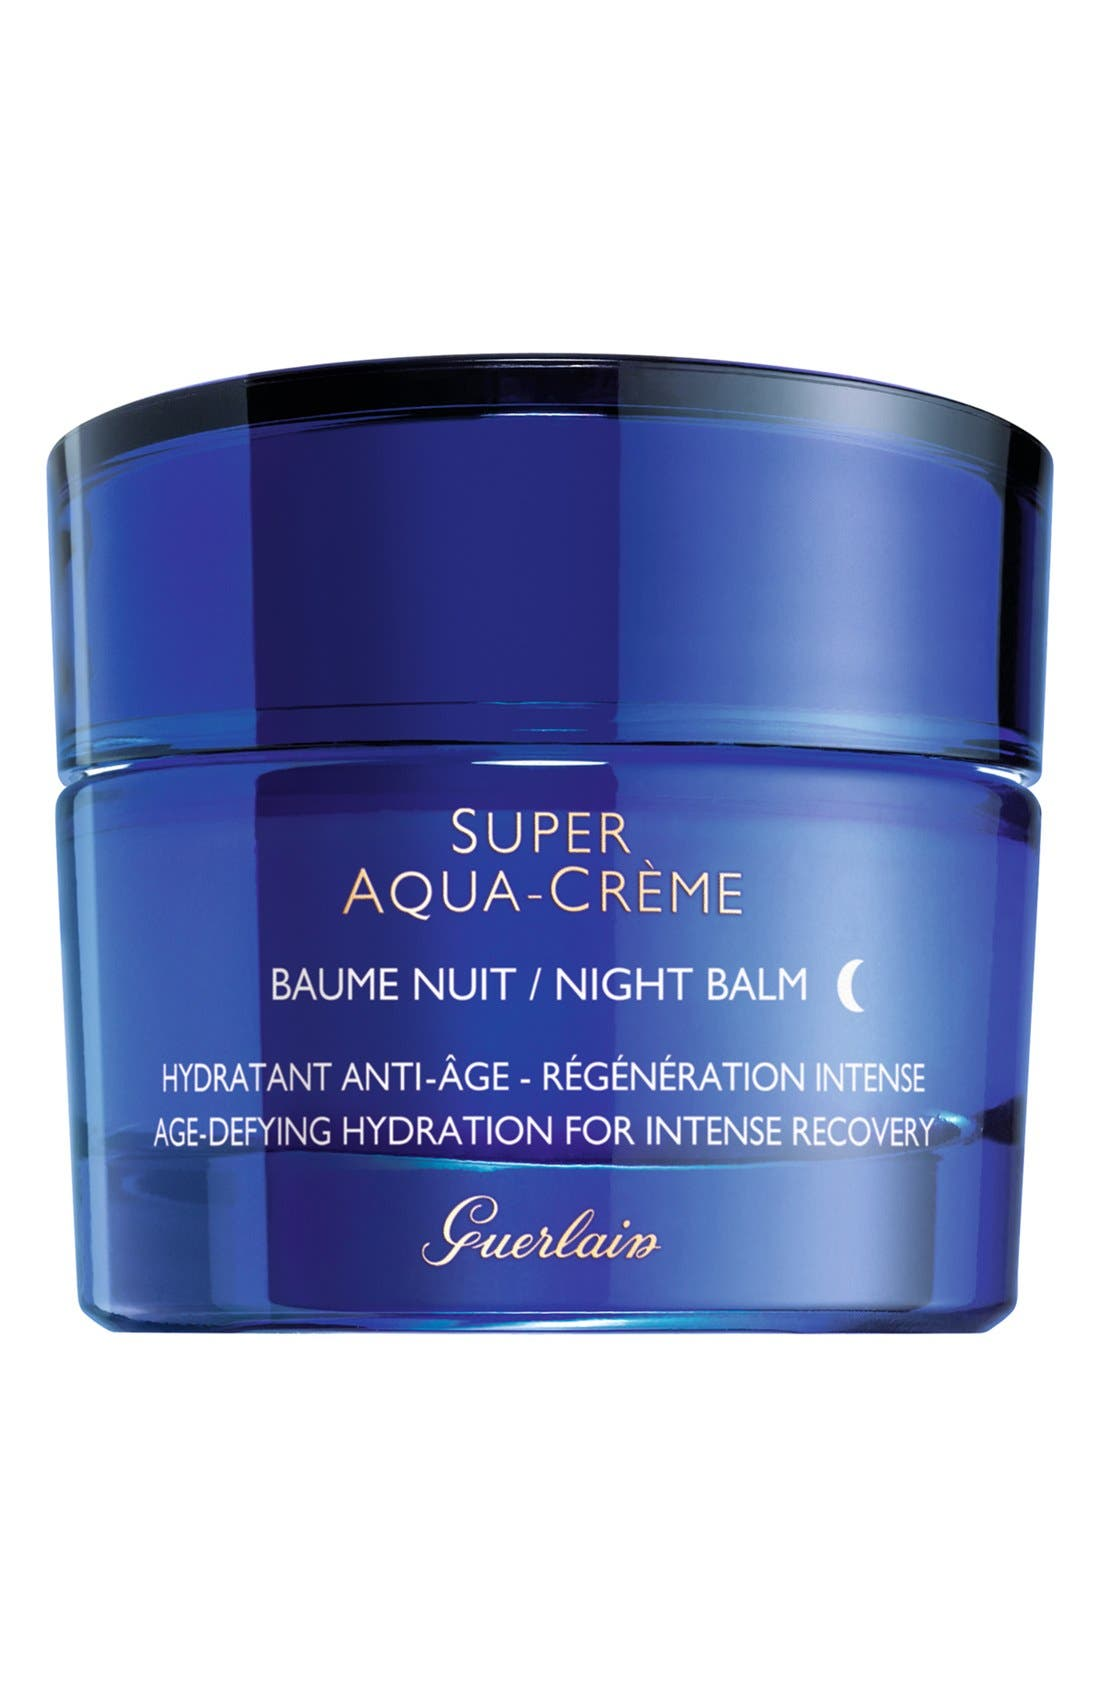 Super Aqua-Crème Night Balm,                             Main thumbnail 1, color,                             NO COLOR